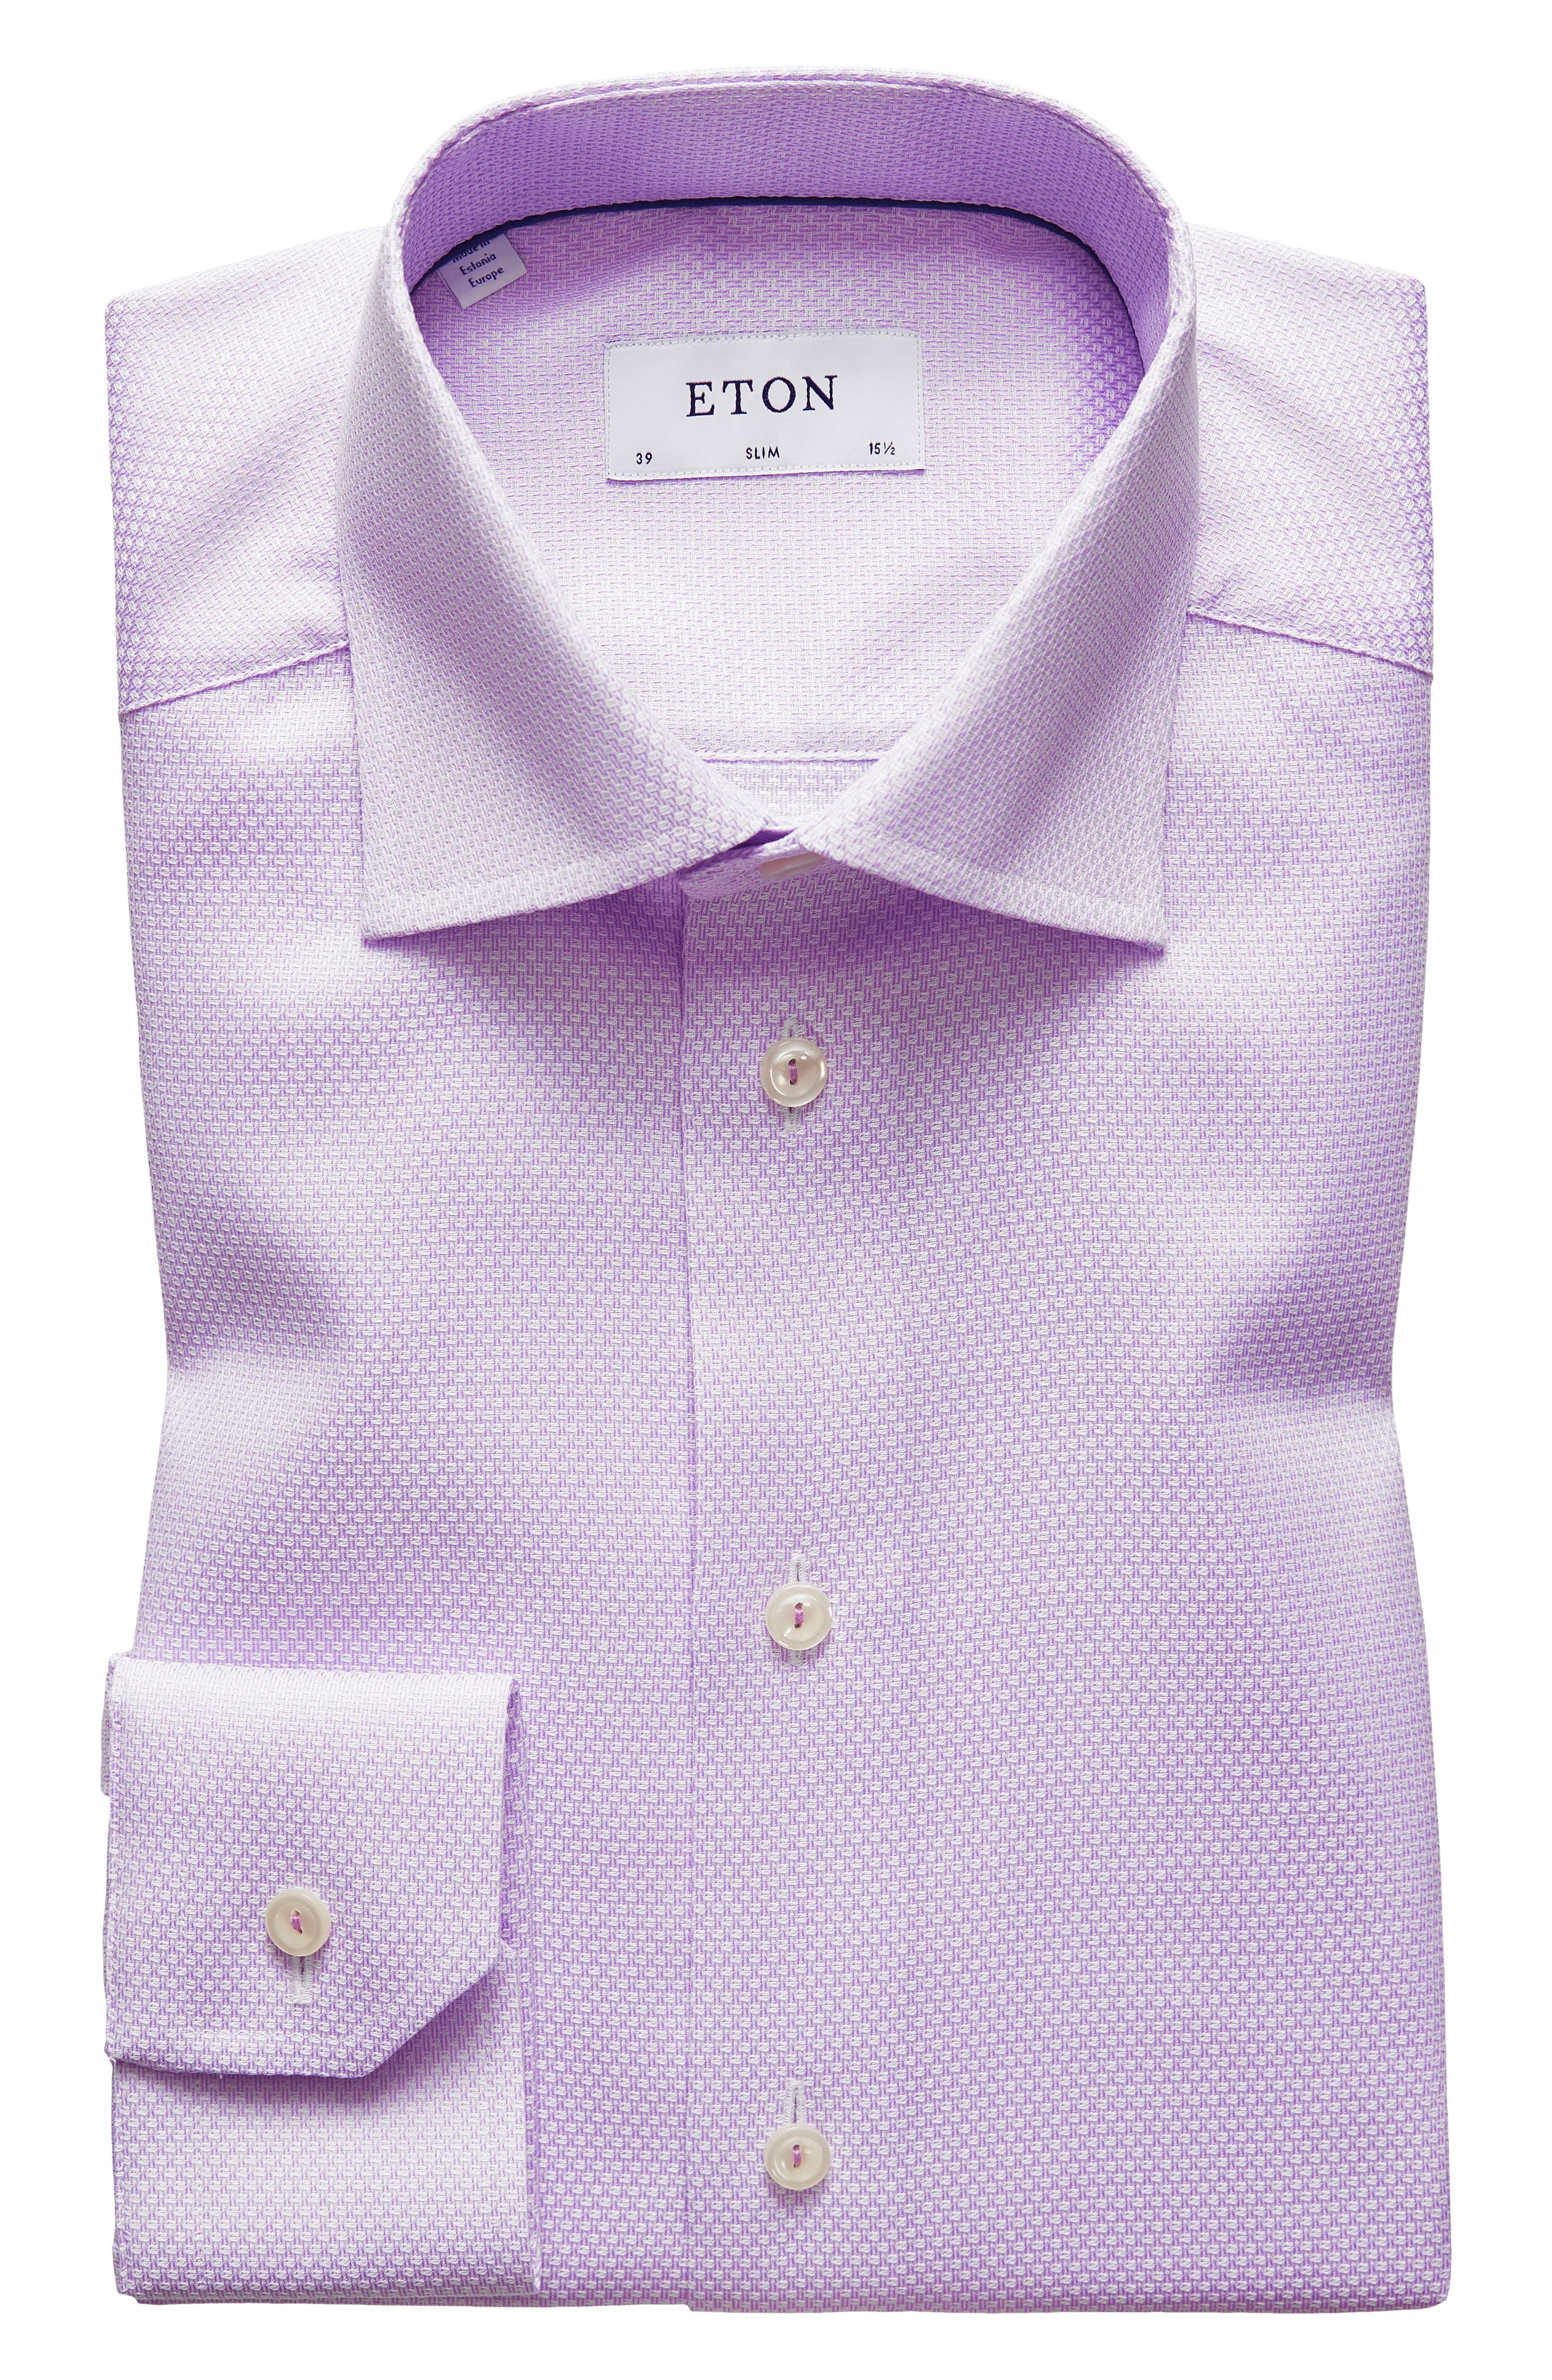 Slim Fit Textured Solid Dress Shirt,                             Alternate thumbnail 7, color,                             Purple